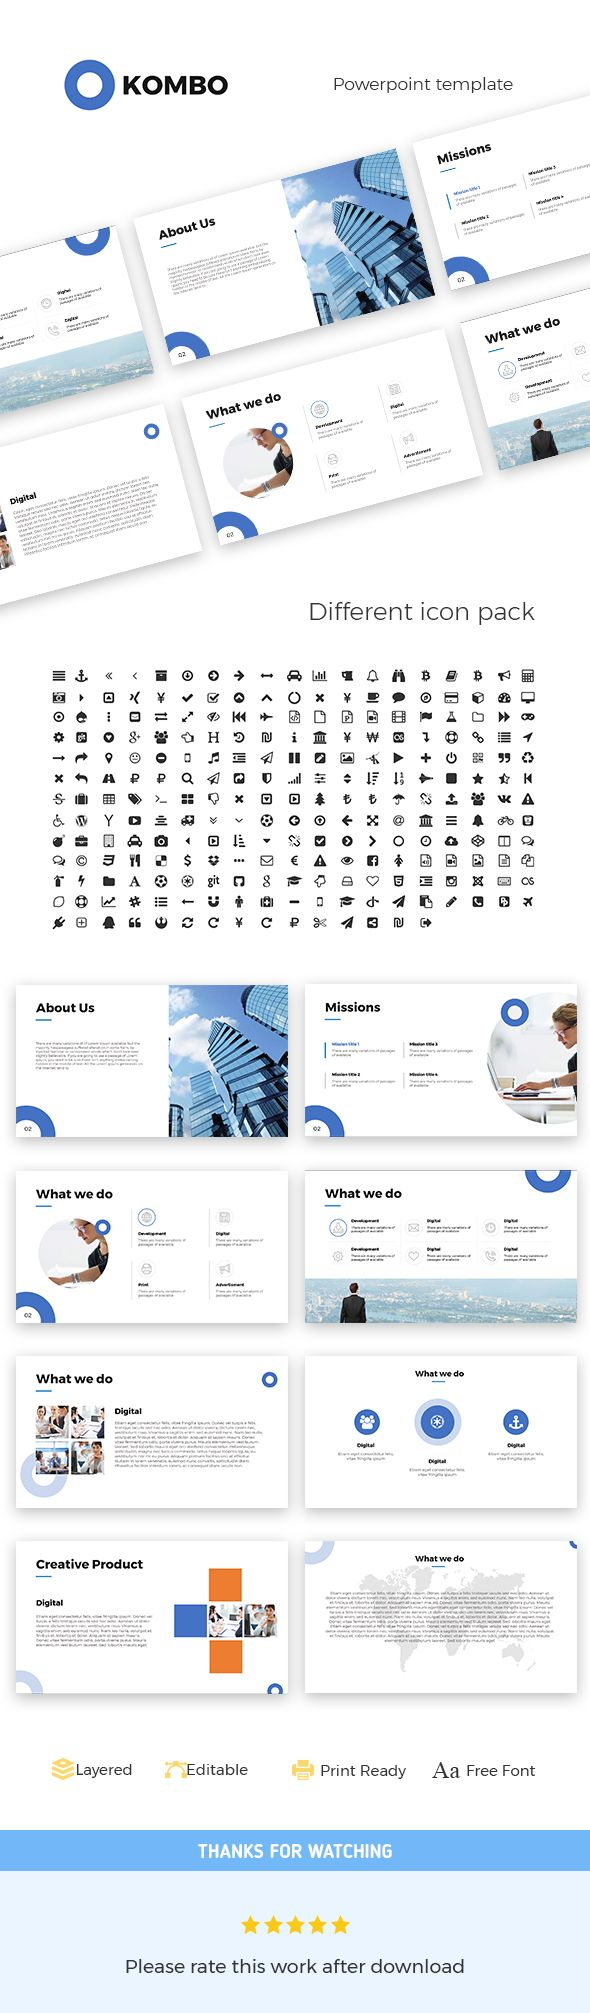 well designed powerpoint templates - best 25 power point templates ideas on pinterest